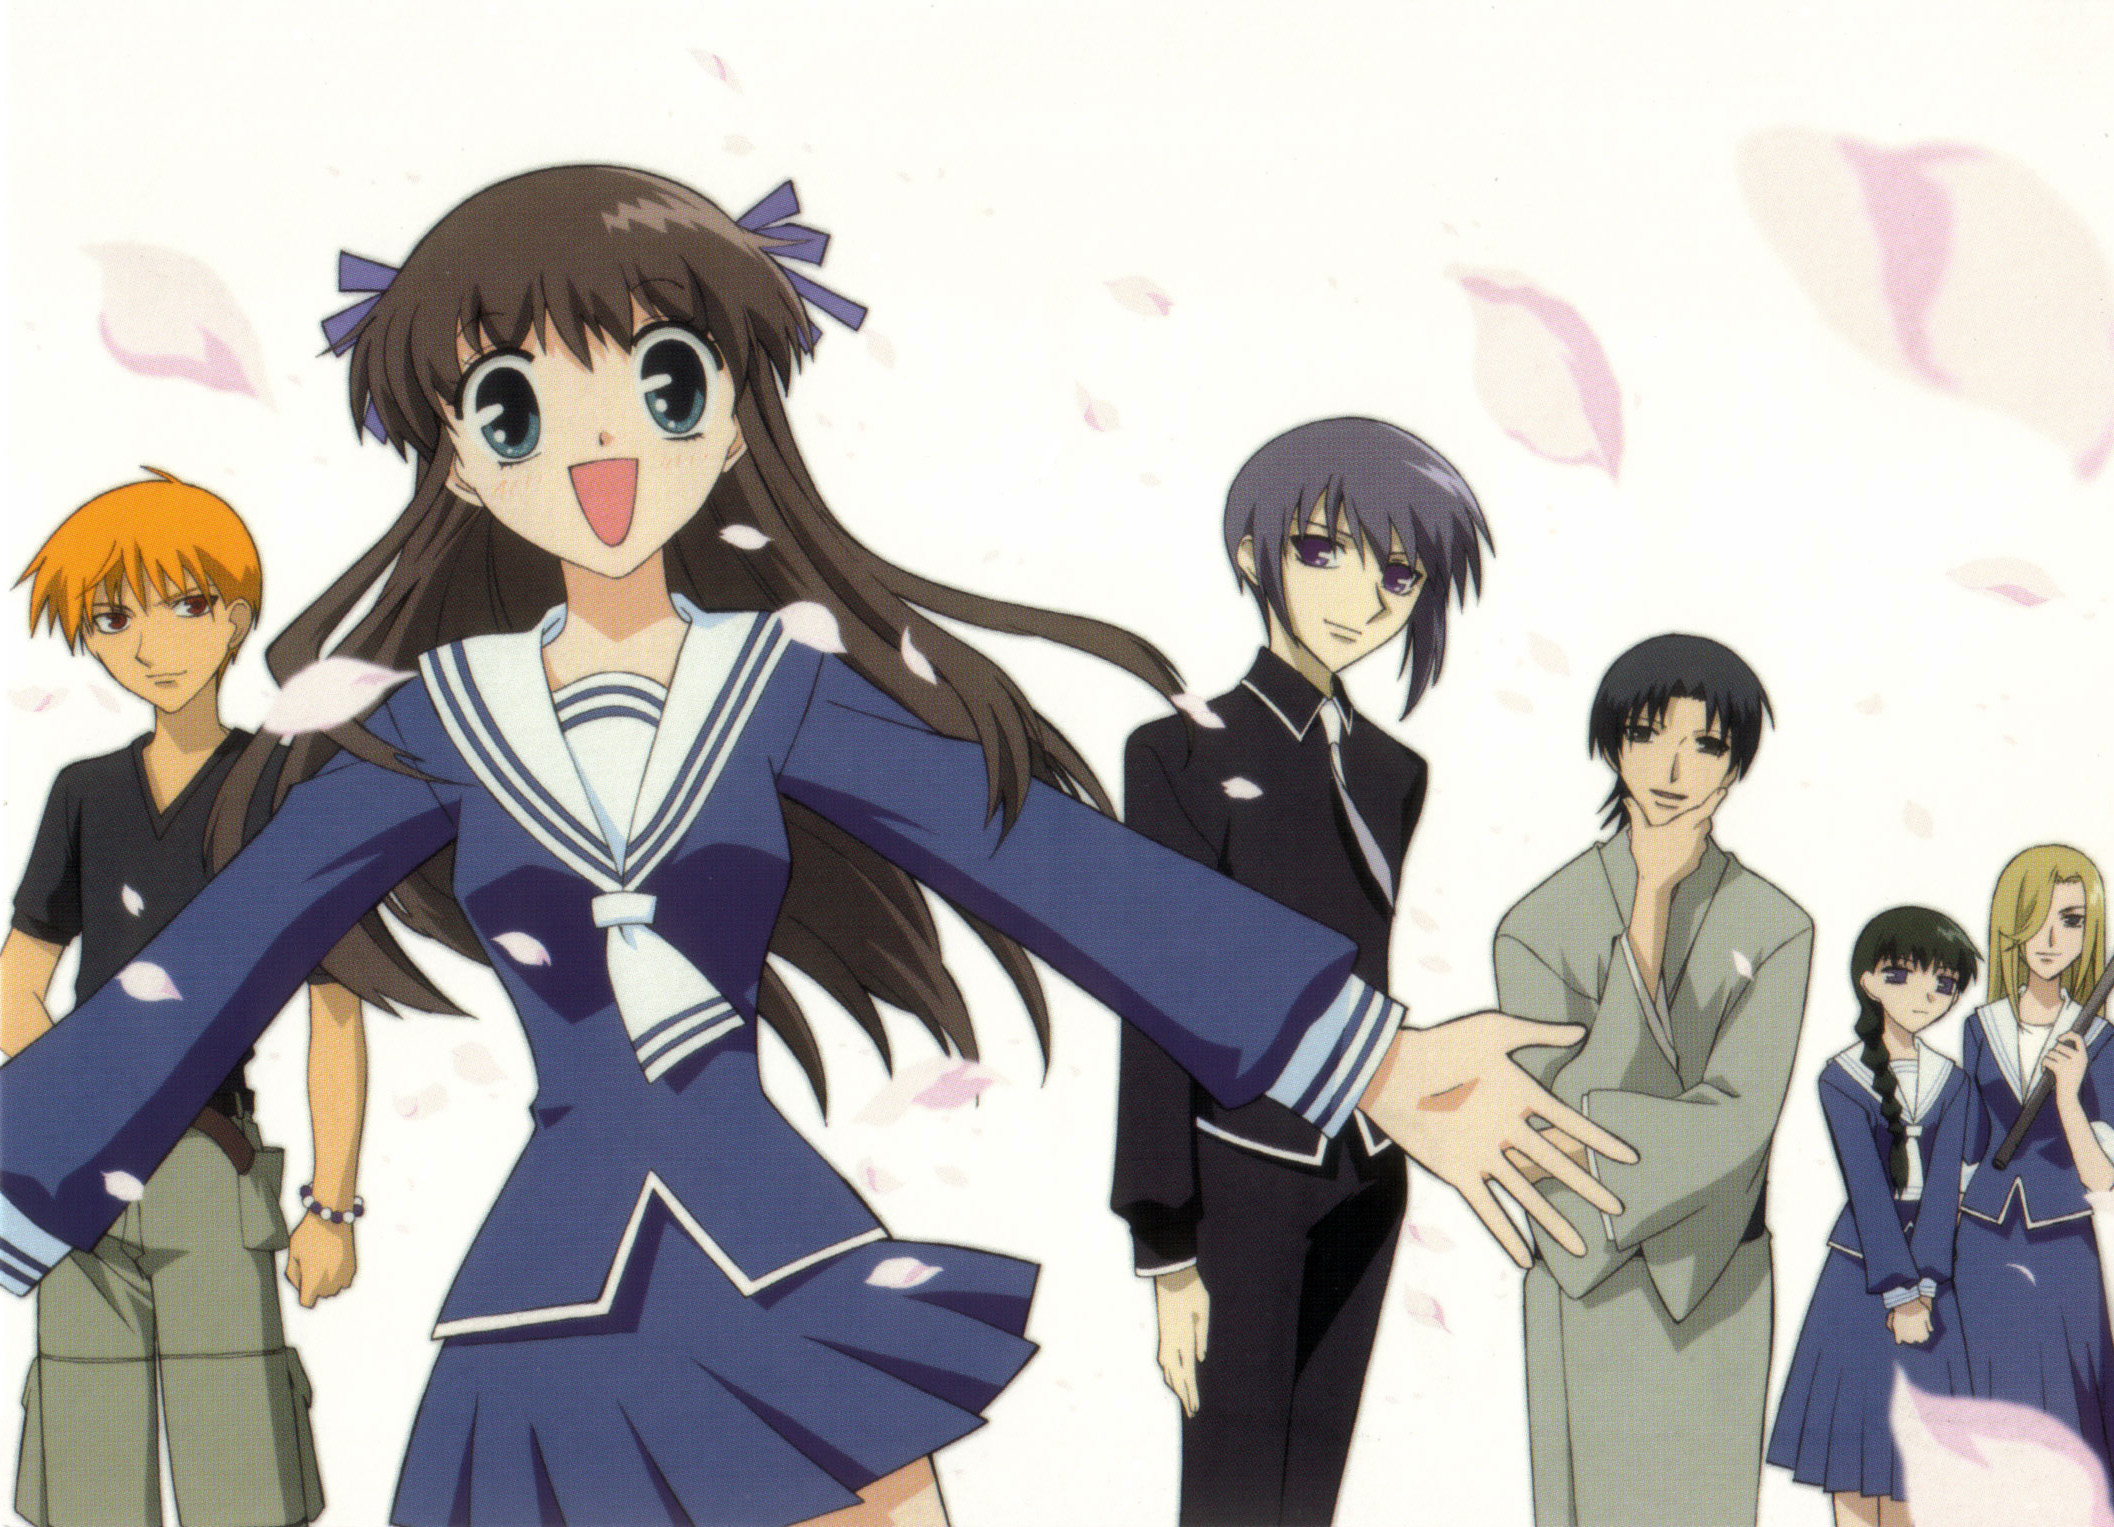 10 Animes With Strong Female Characters